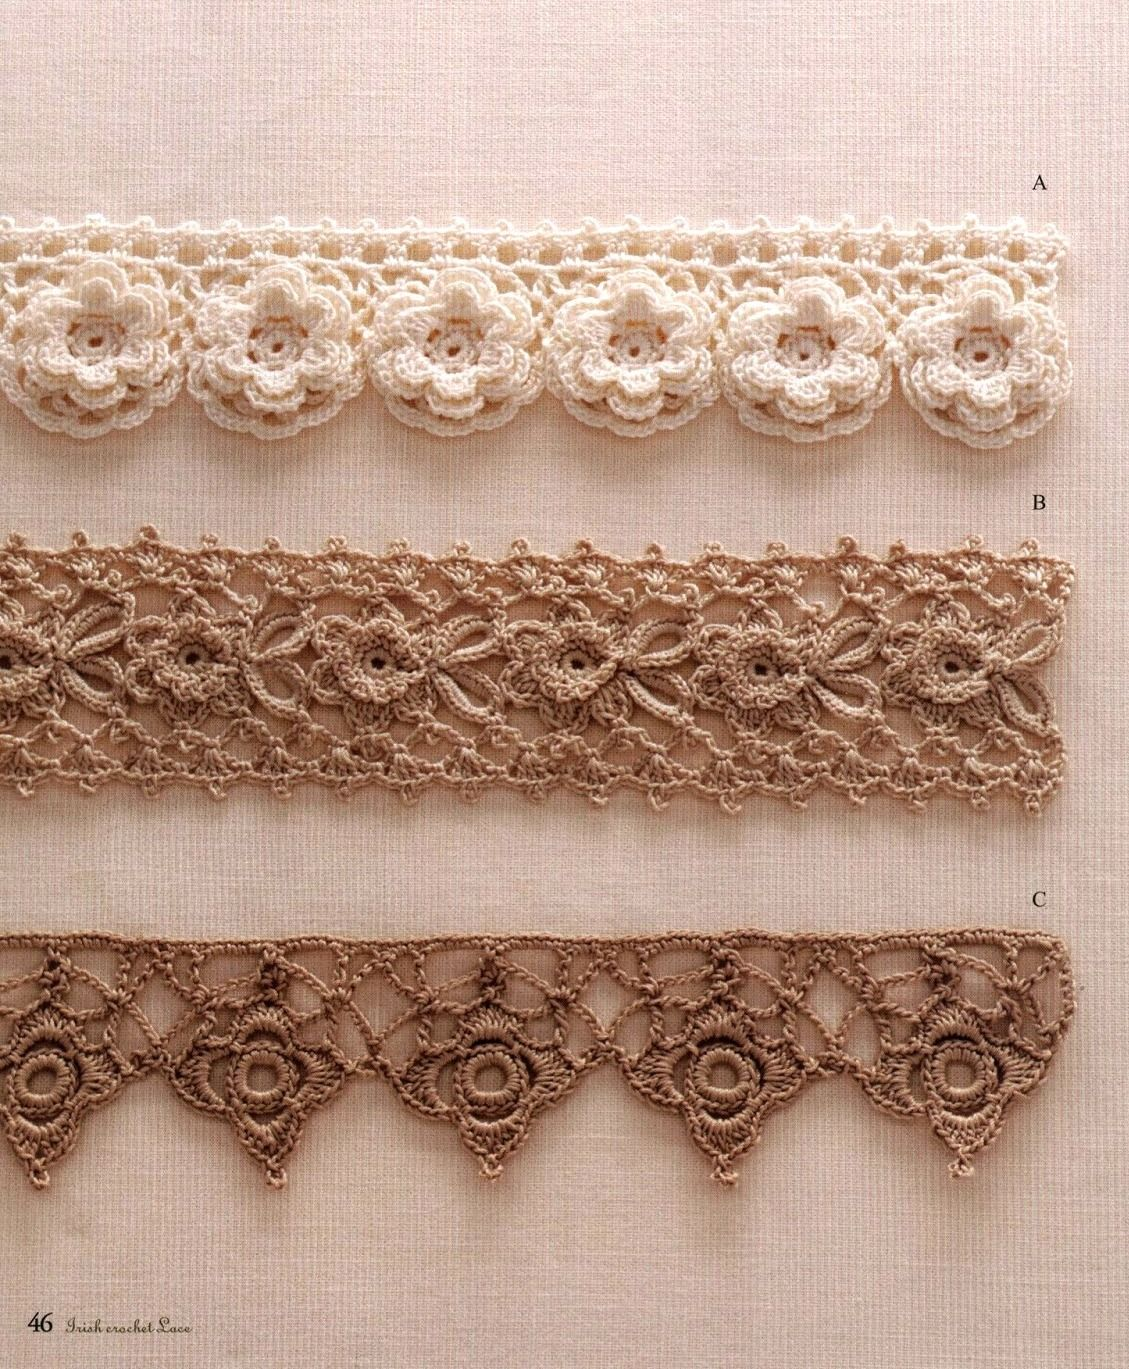 Crochet Lace Wedding Garter Pattern: Patrones De Galones Decorativos